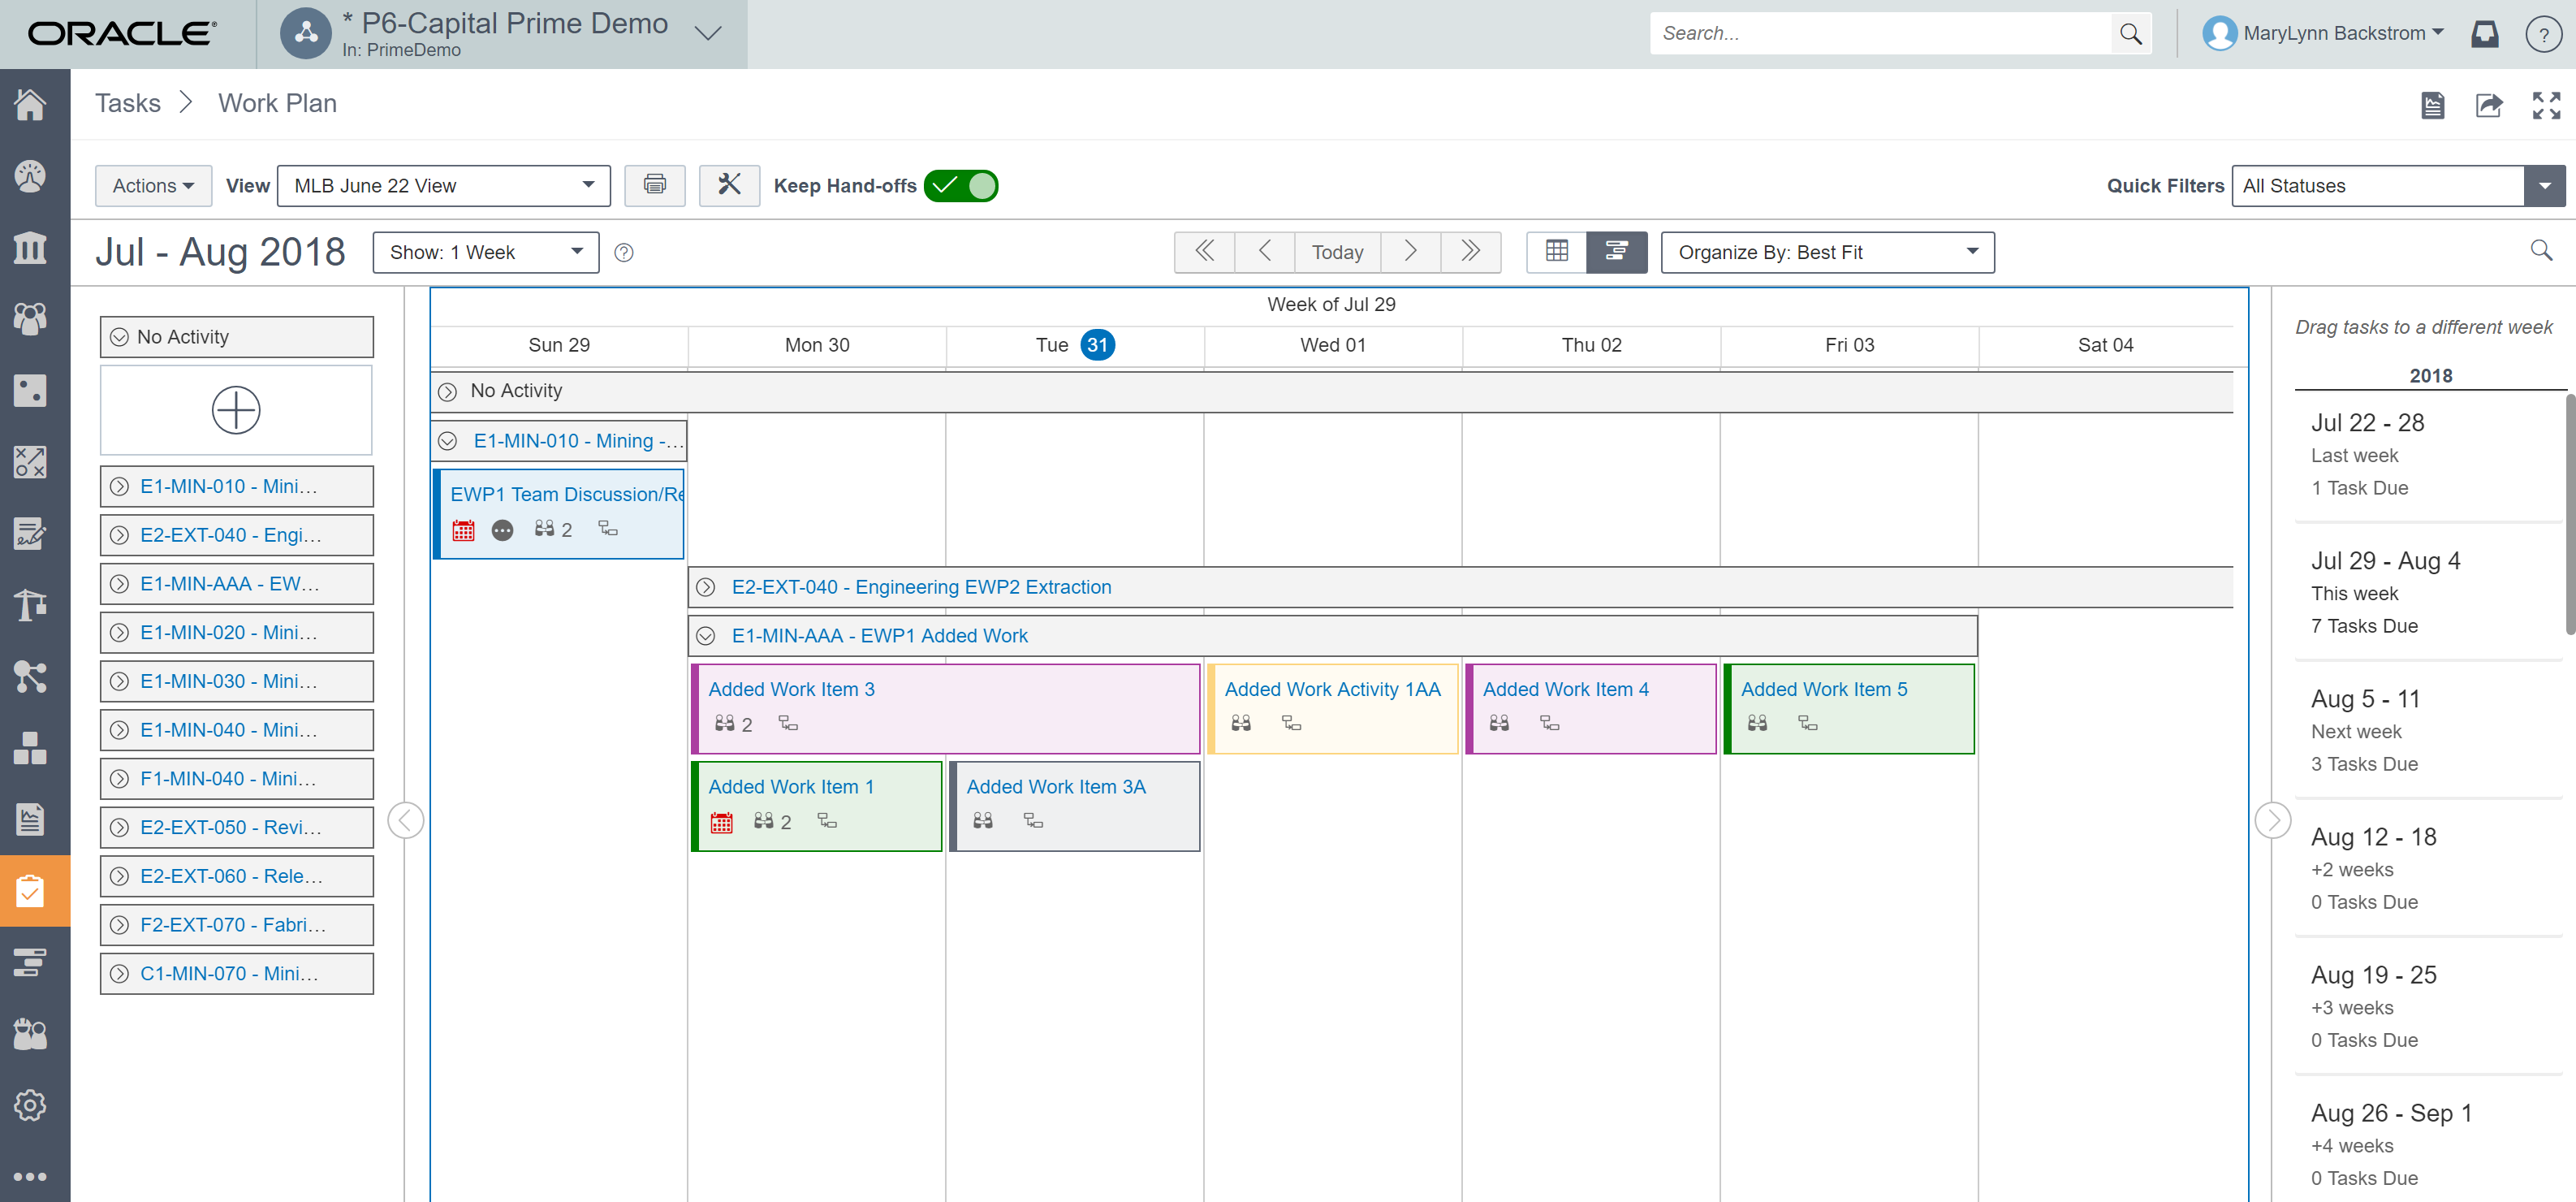 Oracle Prime Lean Scheduling image1